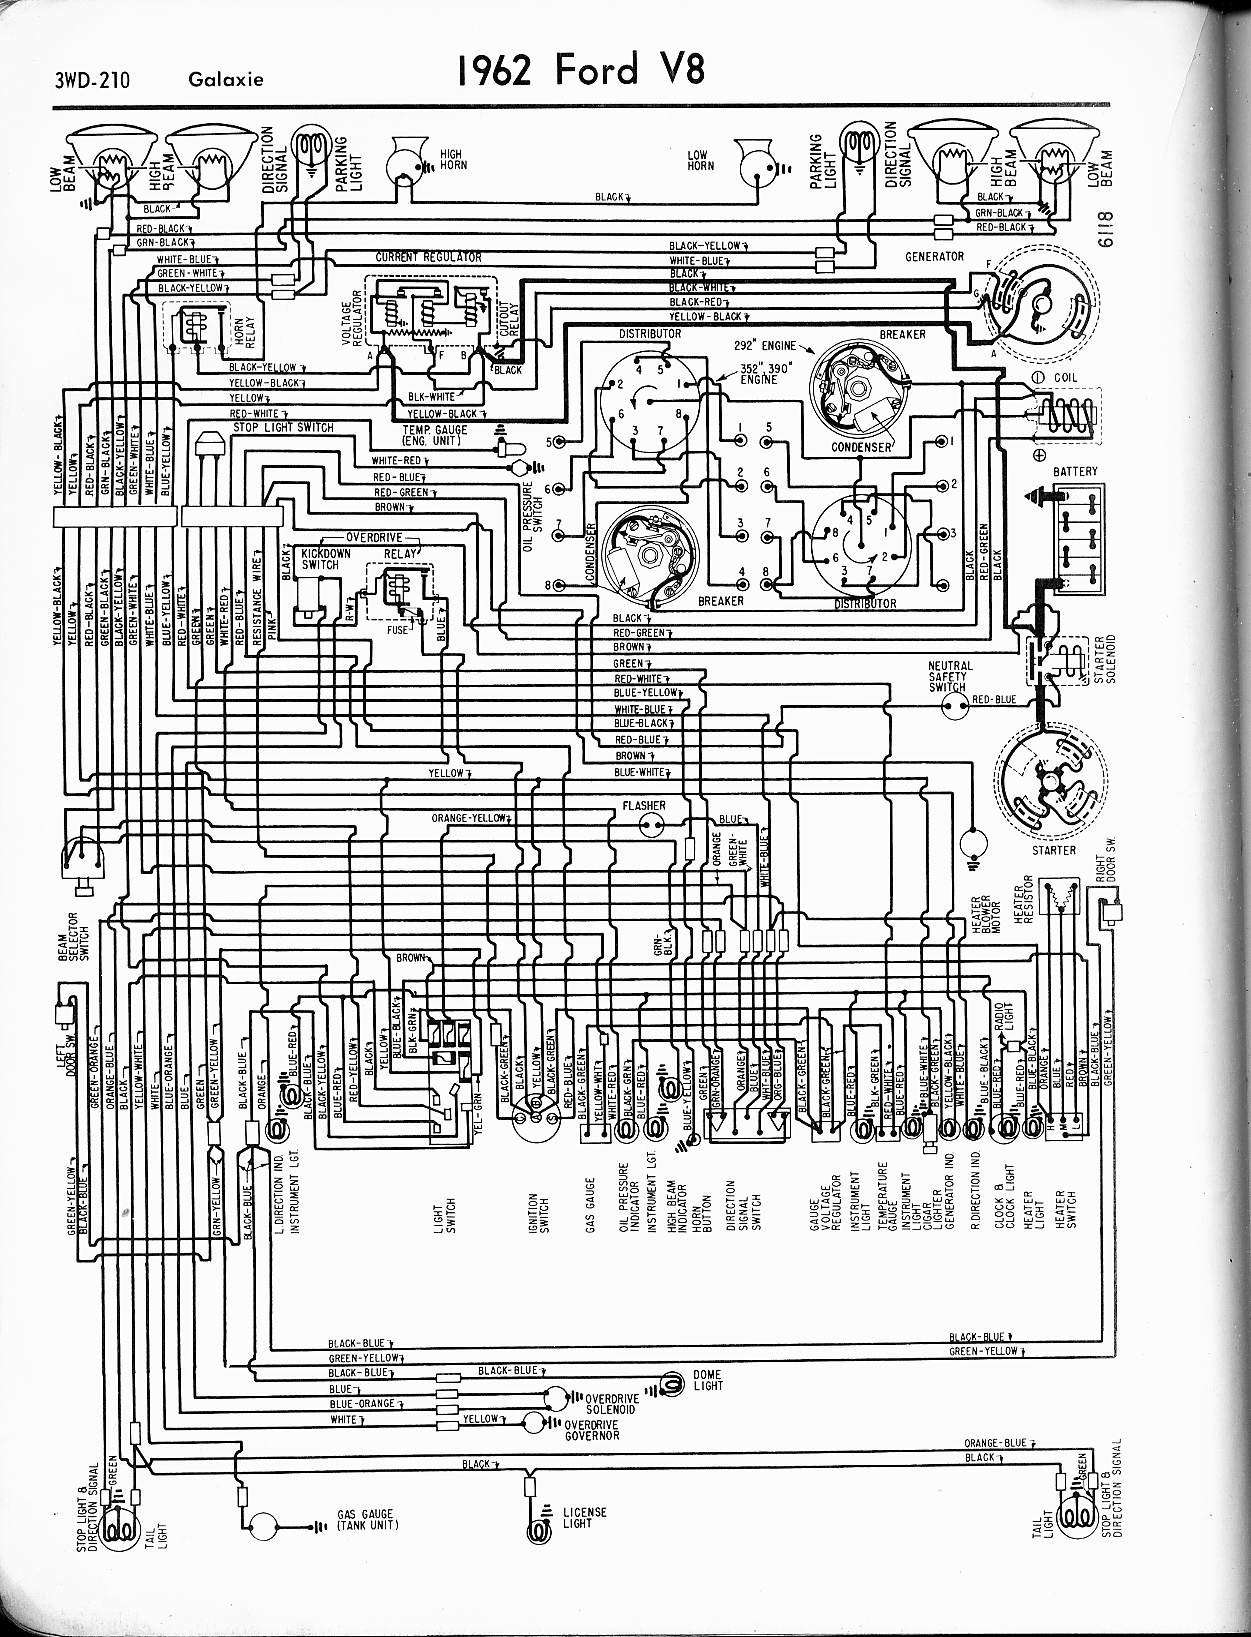 Wiring Diagram For 1967 Ford F100 Trusted Wiring Diagram 1973 Ford F100  Ignition Switch Diagram 1977 Ford F100 Wiring Diagrams